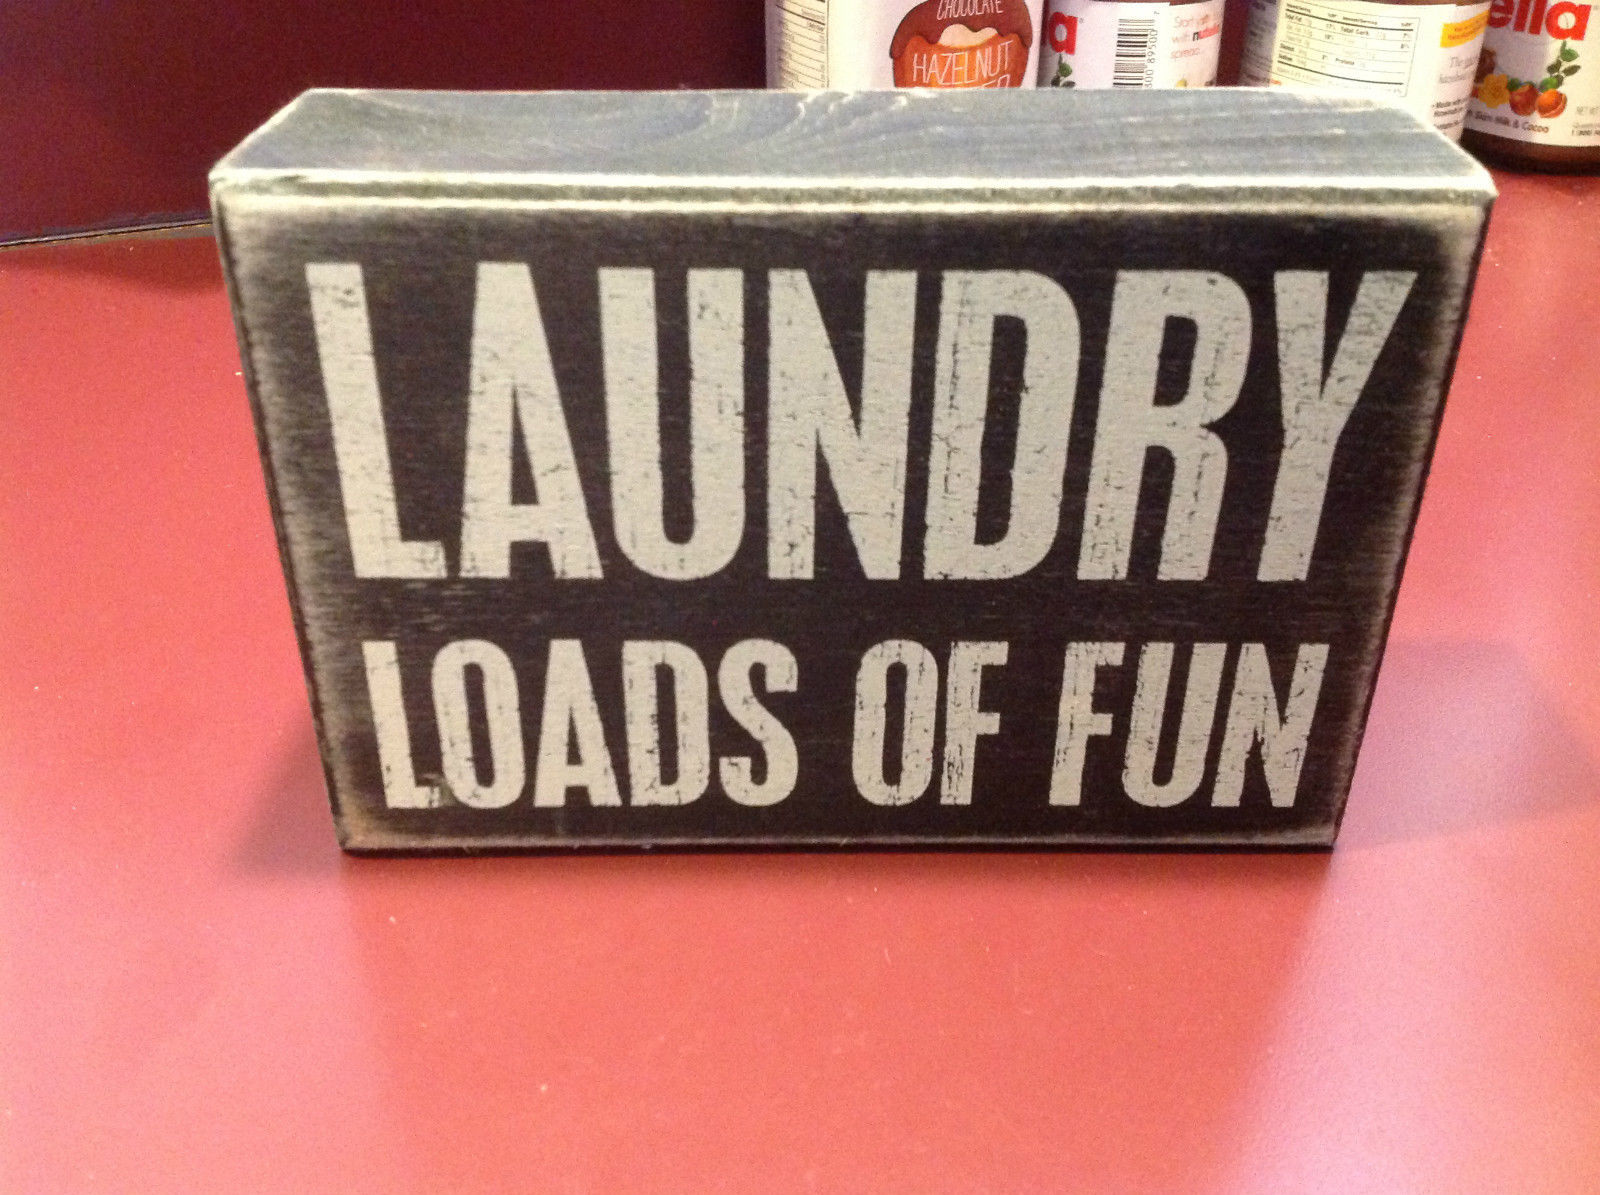 Black Wooden Box Sign with LAUNDRY LOADS OF FUN in White Letters